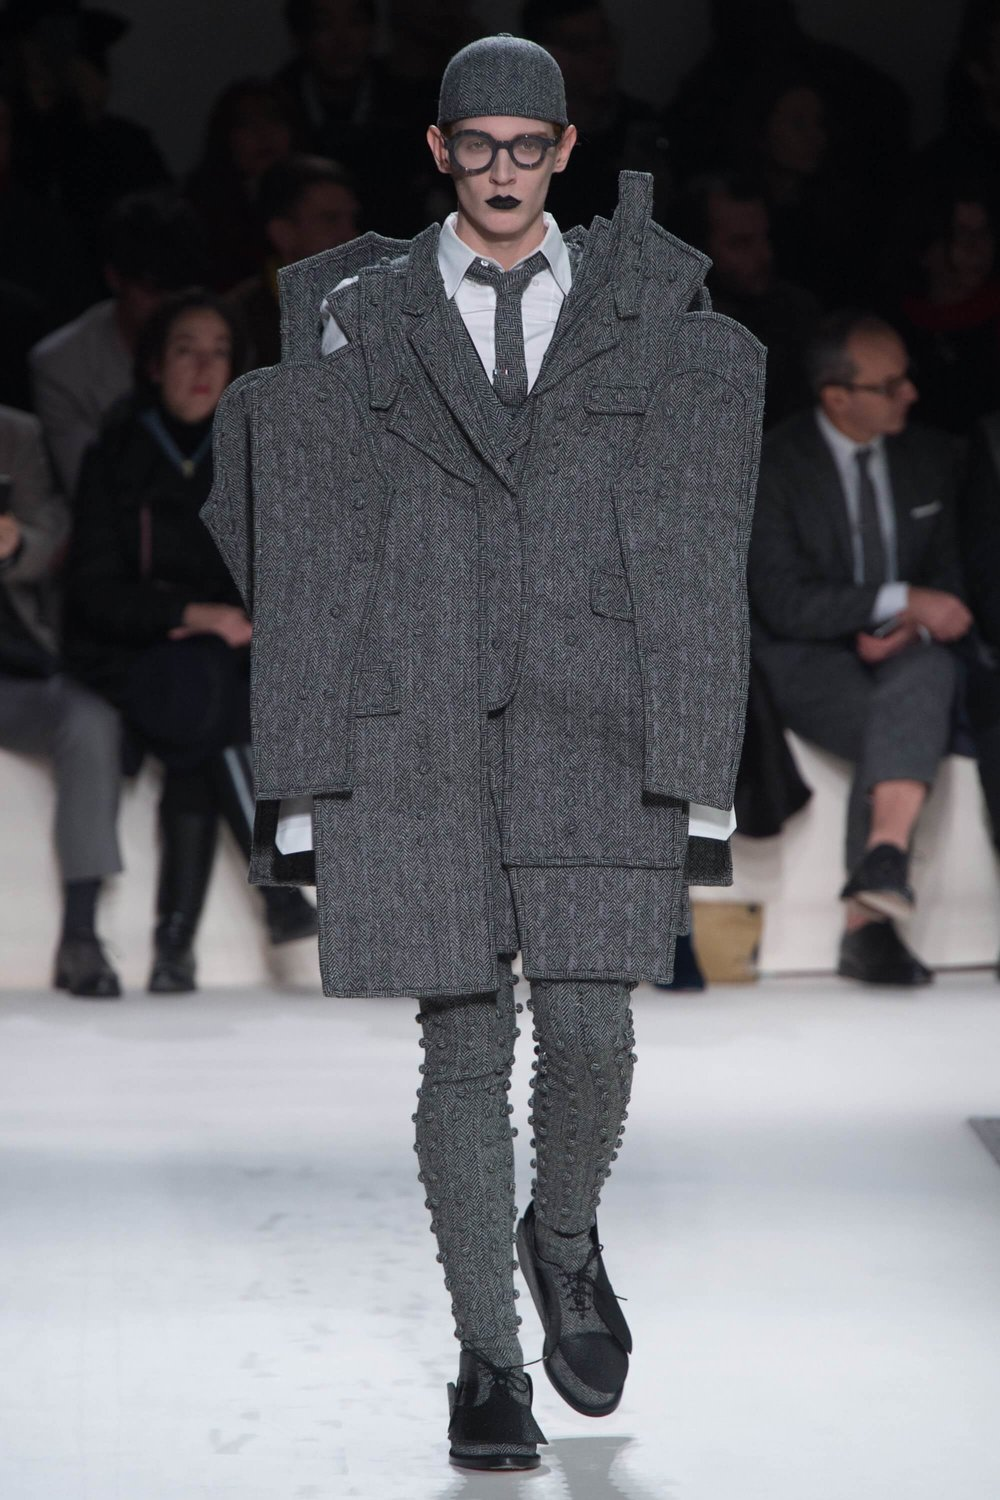 Thom-Browne-Never-Fails-to-Amaze-Thatsitmag-Thatsitmagazine-GraceBrookes-Paris-Fashion-week10.jpg